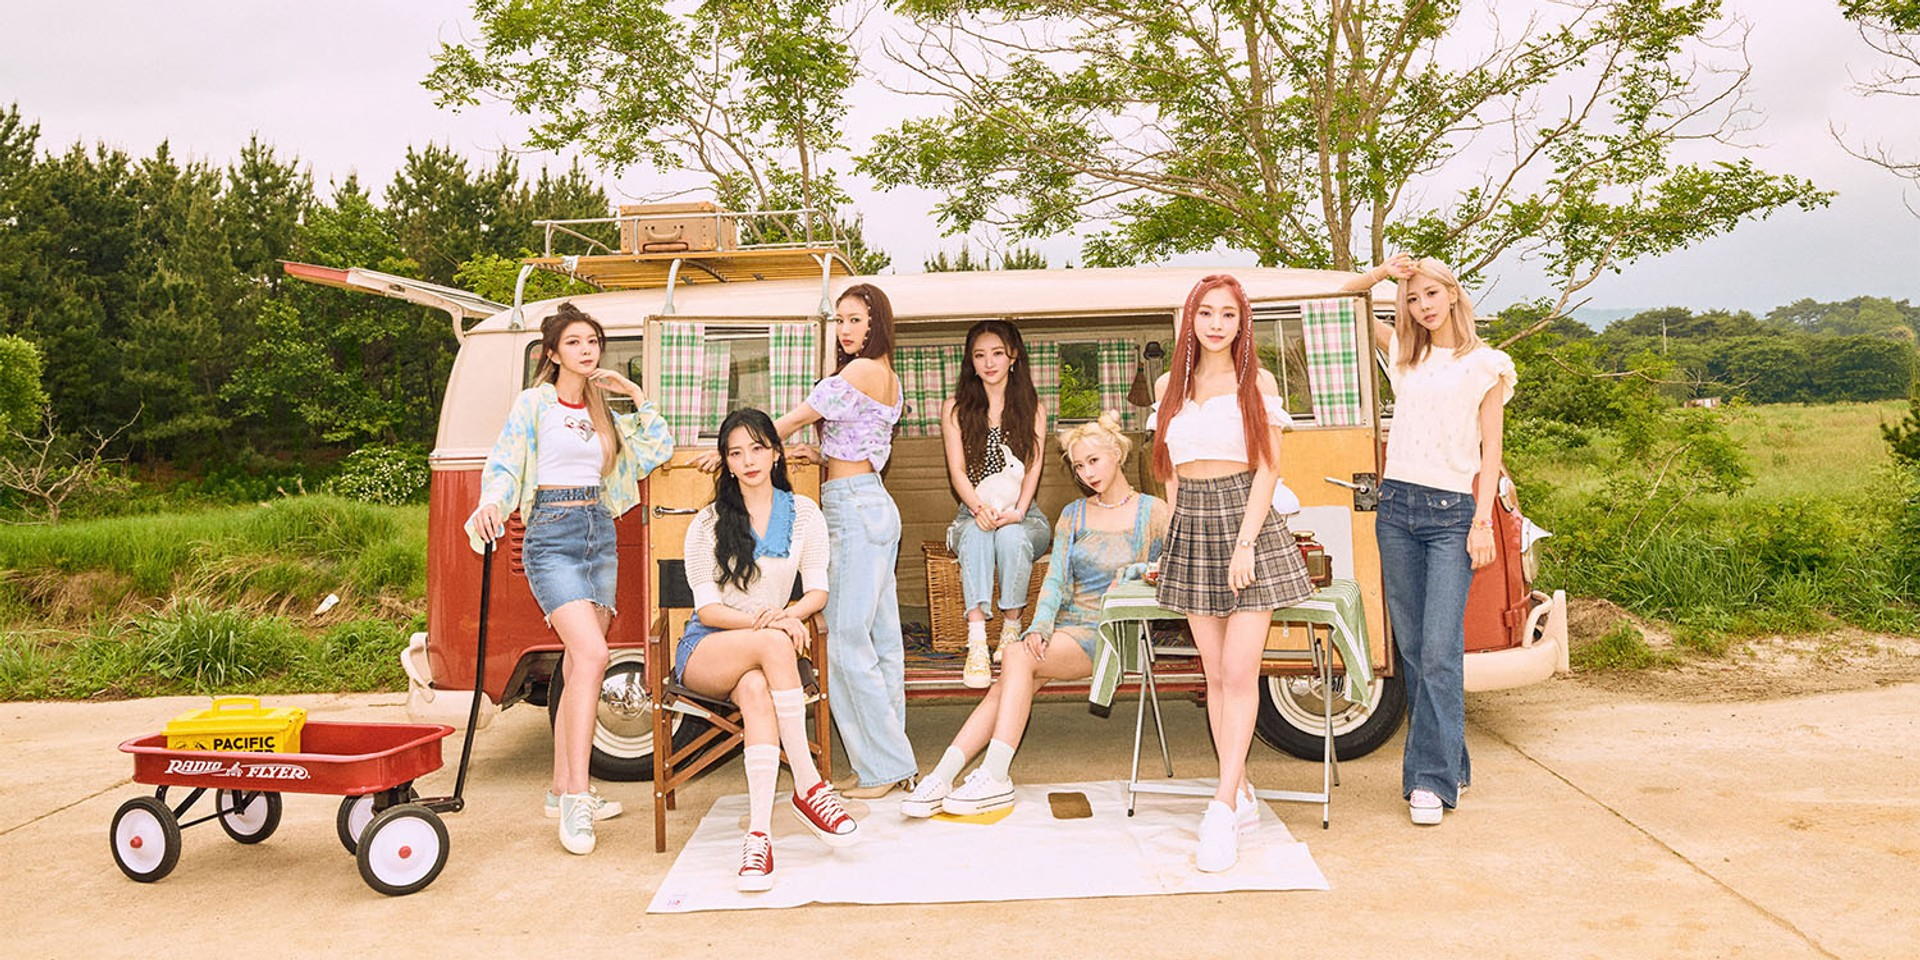 Dreamcatcher talk about the concept of their latest album '[Summer Holiday]'